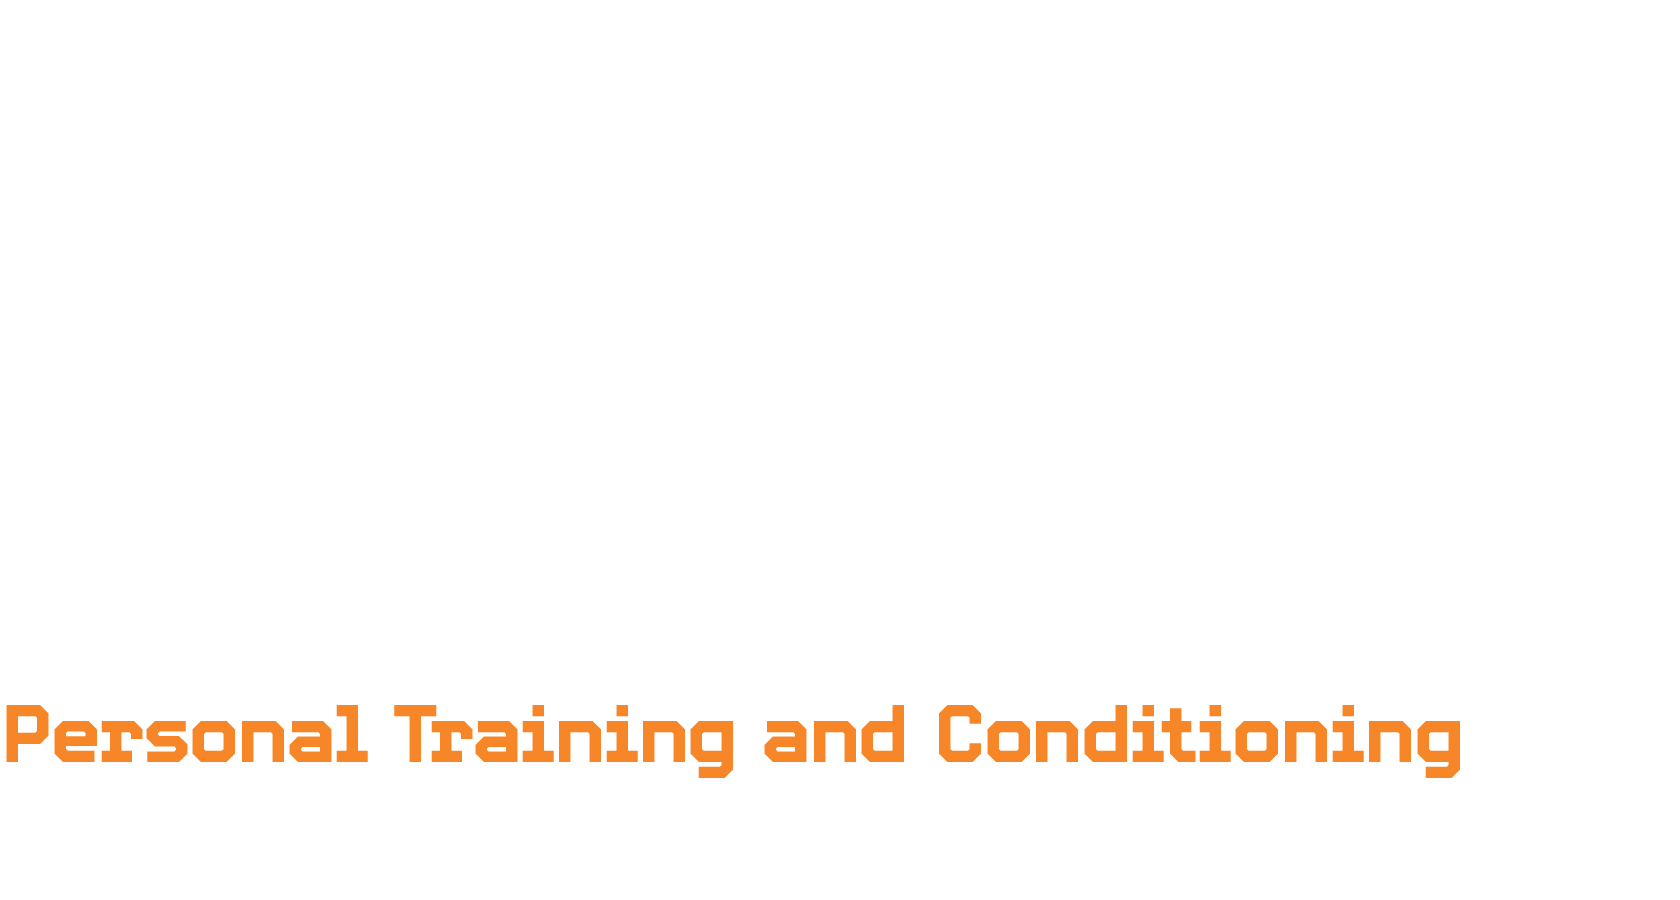 Personal Training and Conditioning